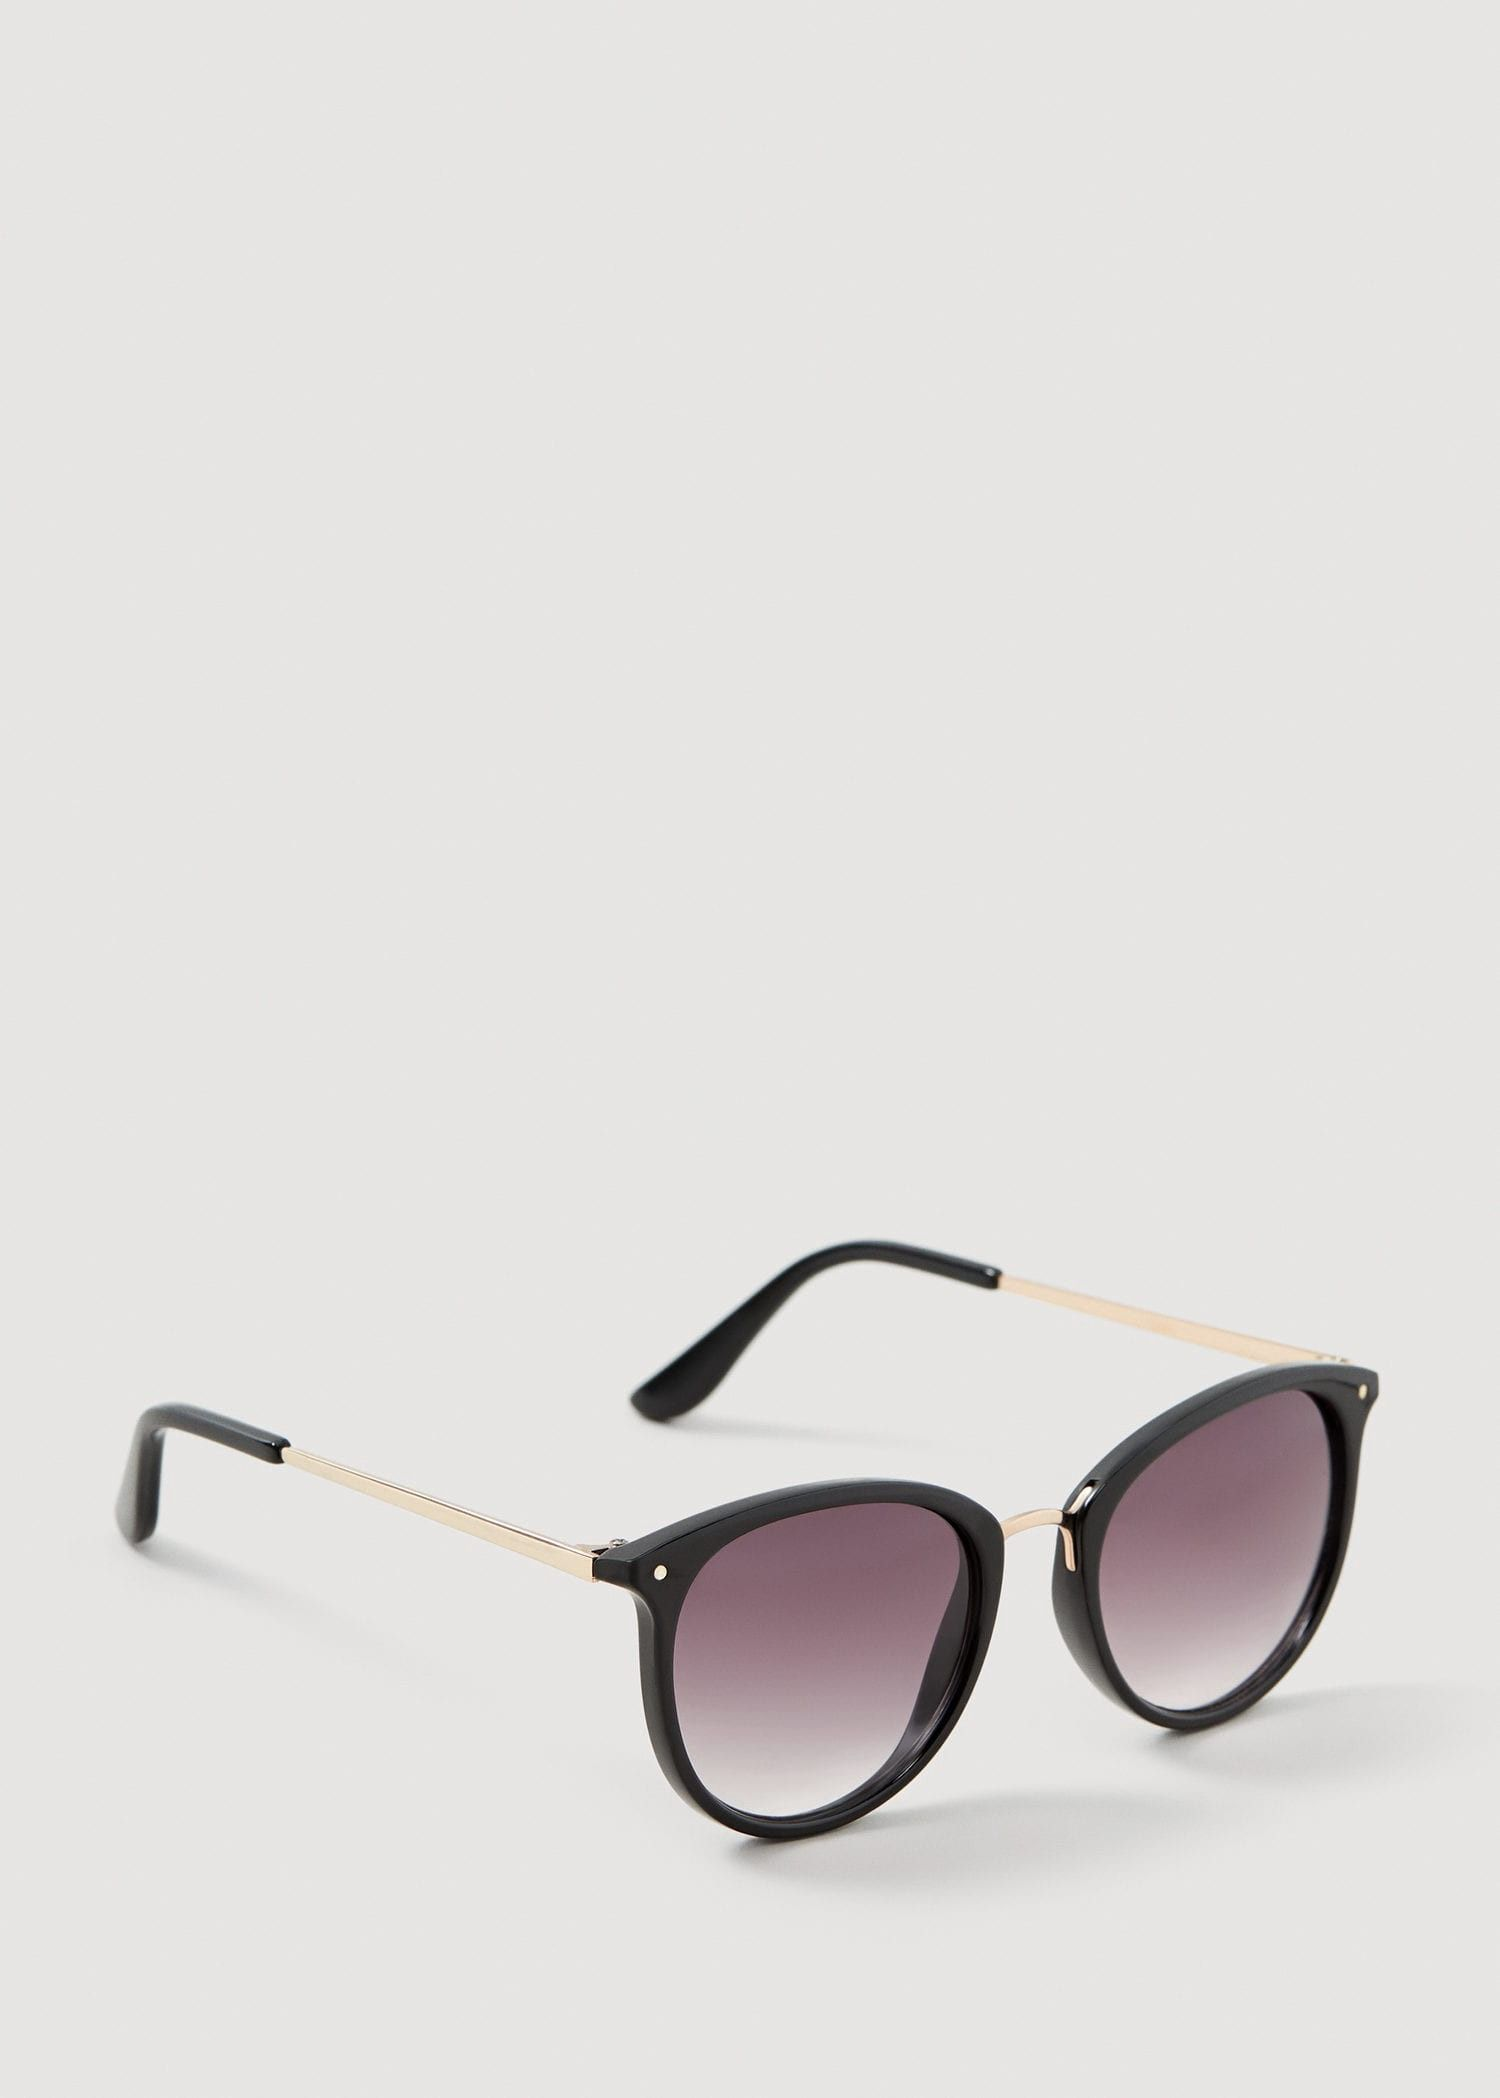 95ecad938c1 Mango Contrasting Sunglasses - Chocolate One Size